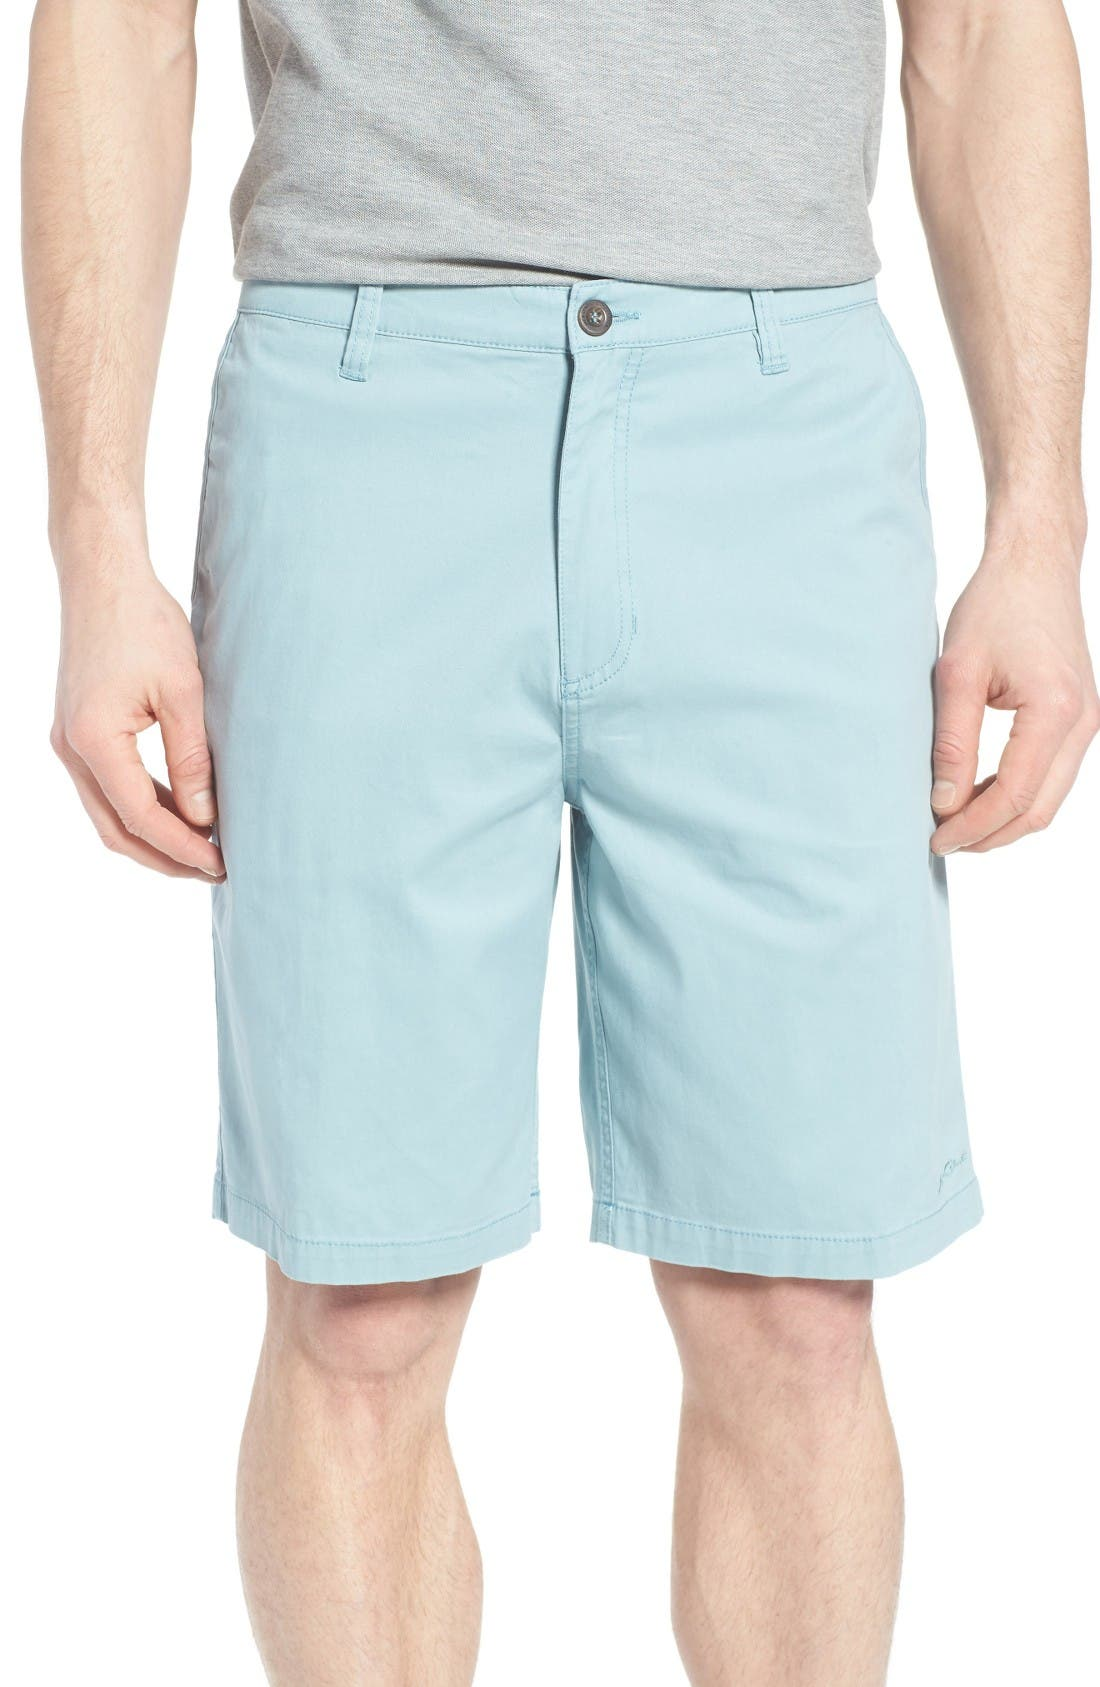 Jack ONeill Flagship Shorts,                         Main,                         color, Stone Blue